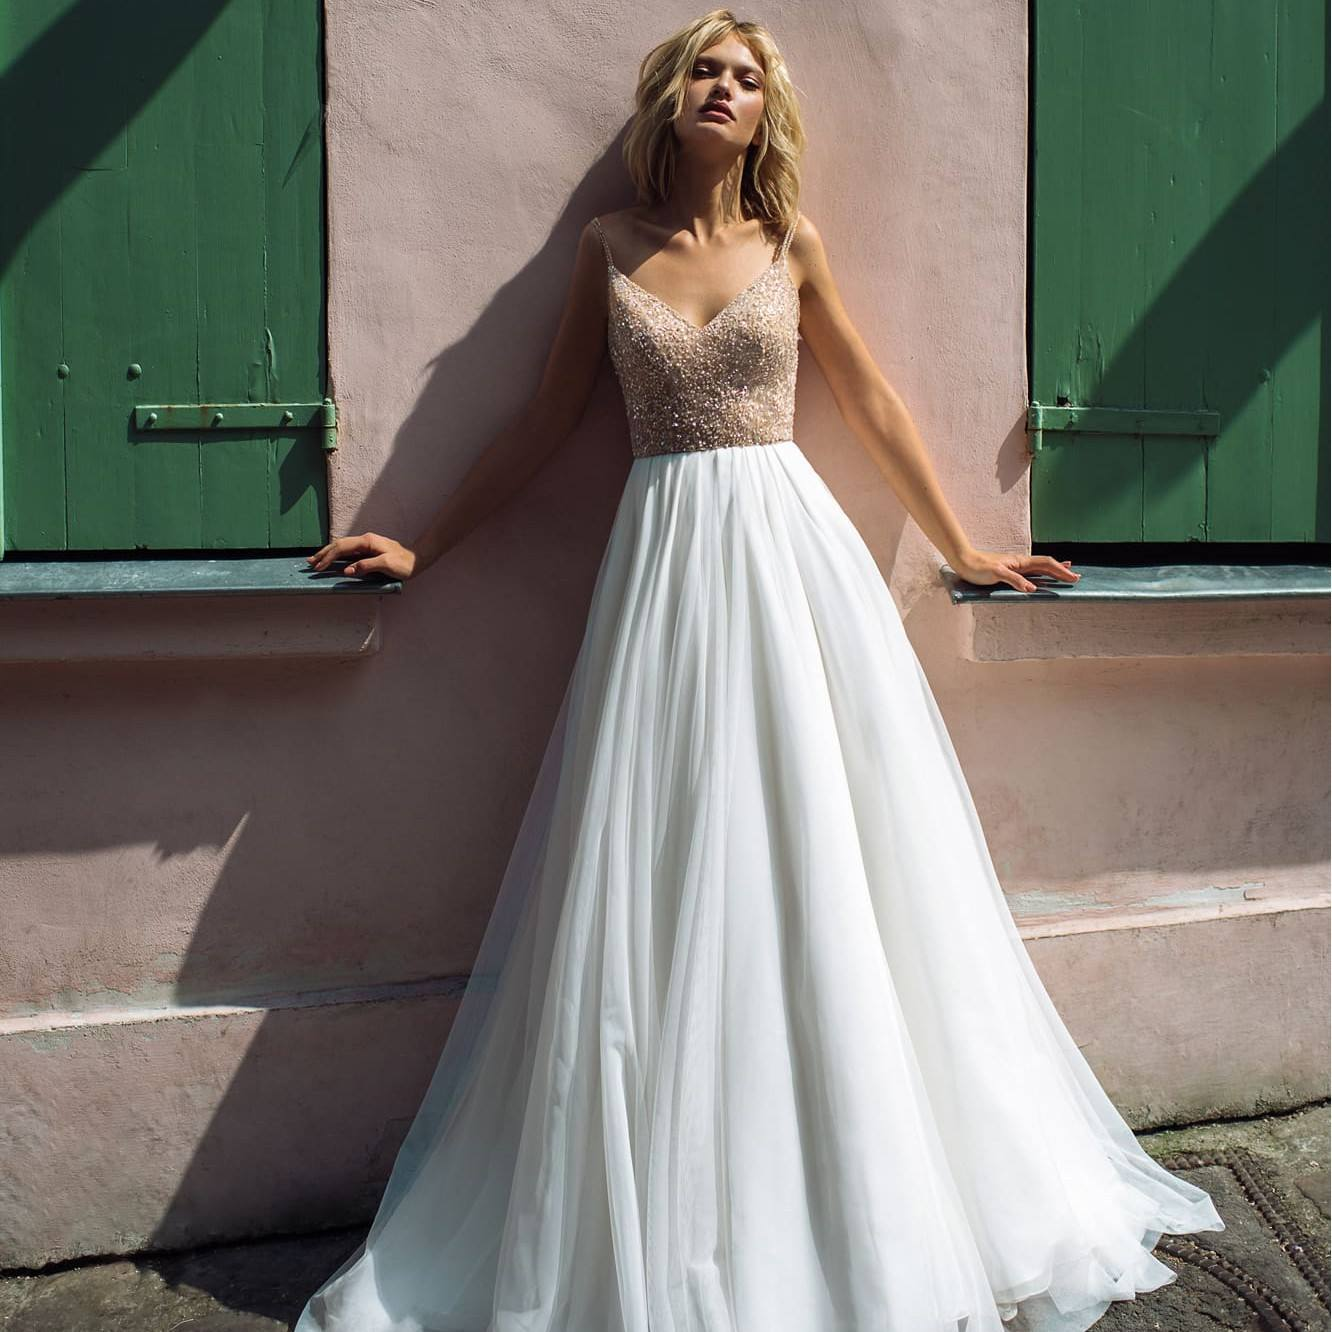 Beach illusion beaded bodice wedding dress, sexy charming beading bodice wedding dress